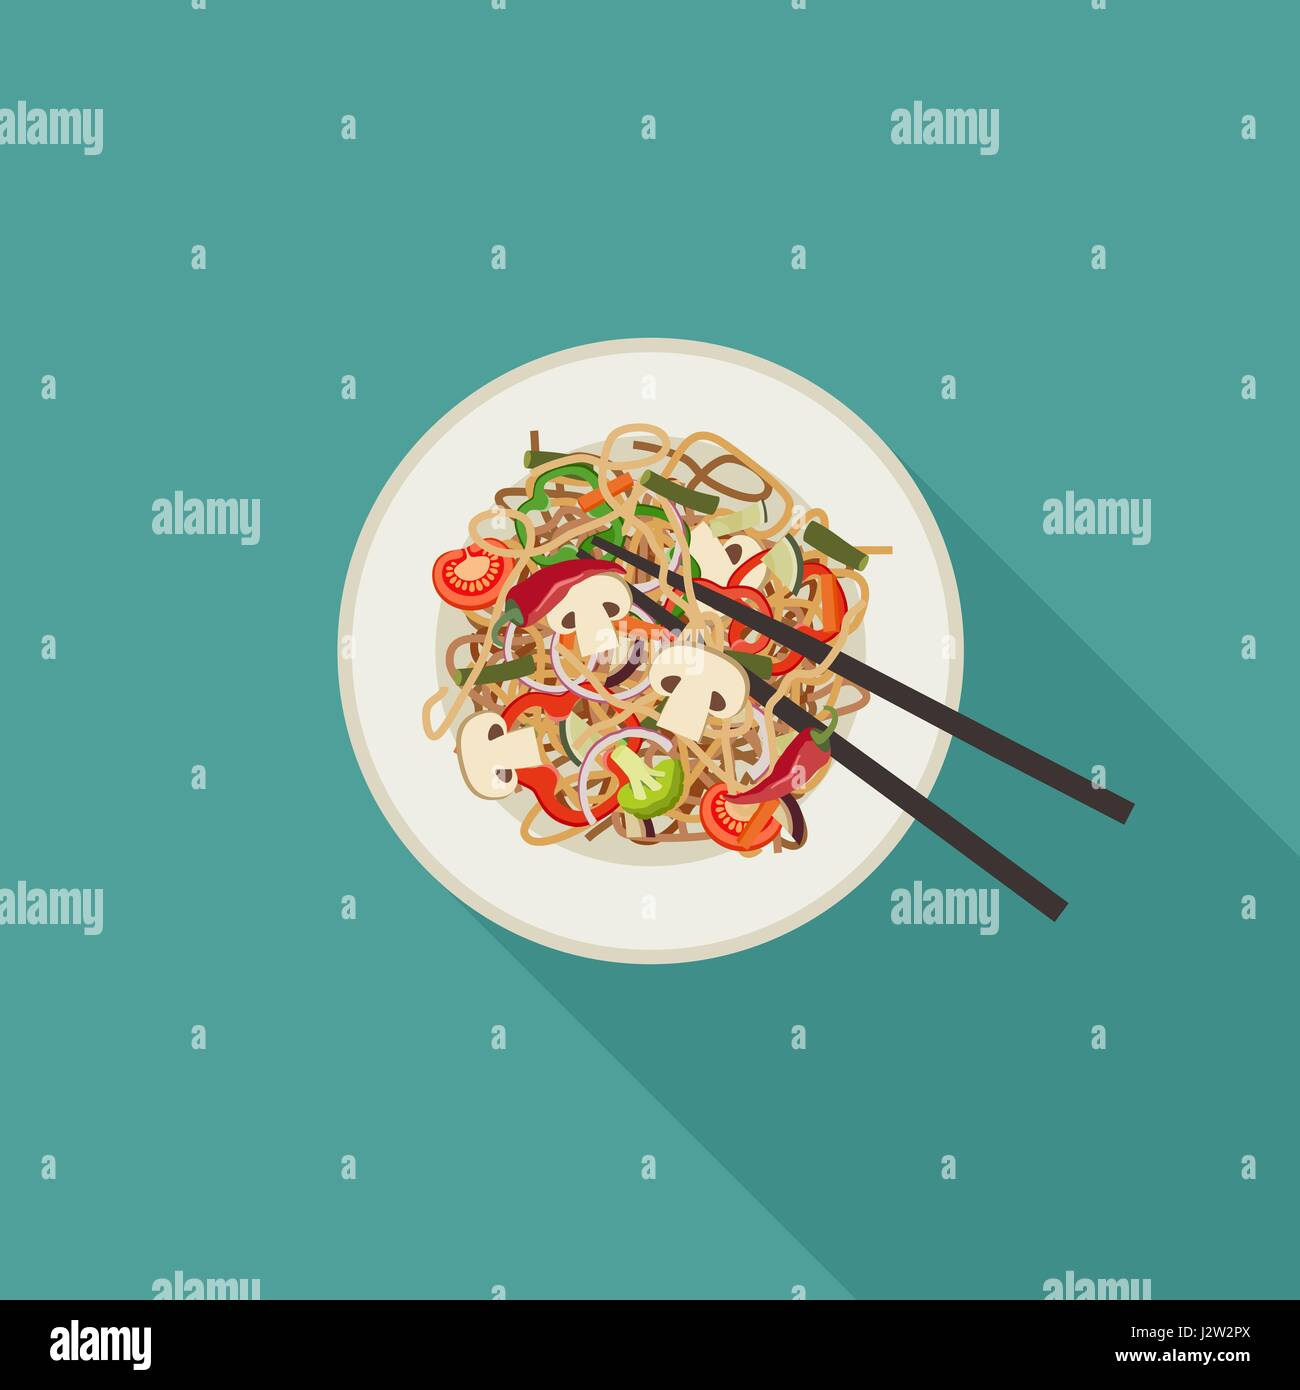 Noodles on plate. - Stock Vector